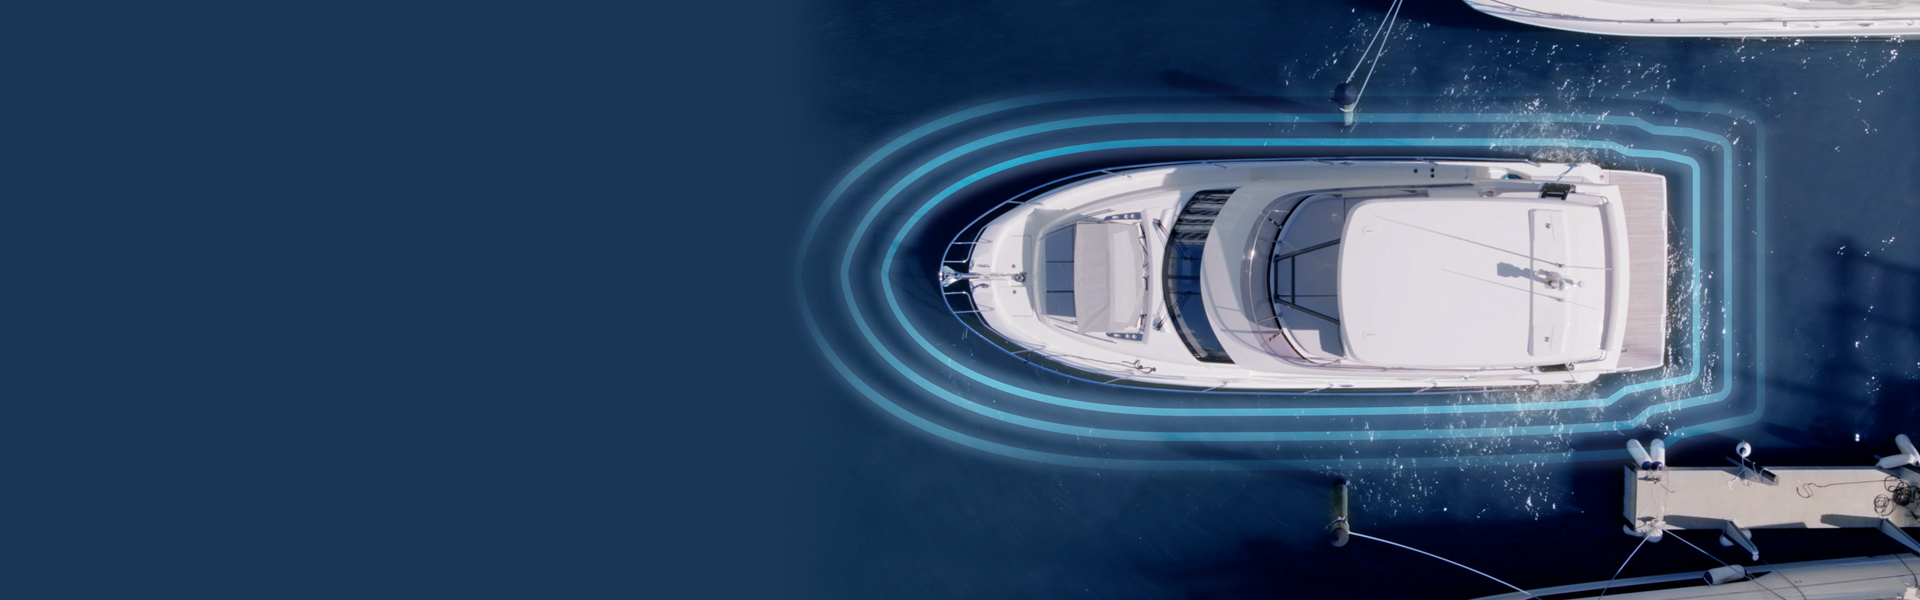 DockSense - Assisted Docking Technology | Marine Electronics by Raymarine